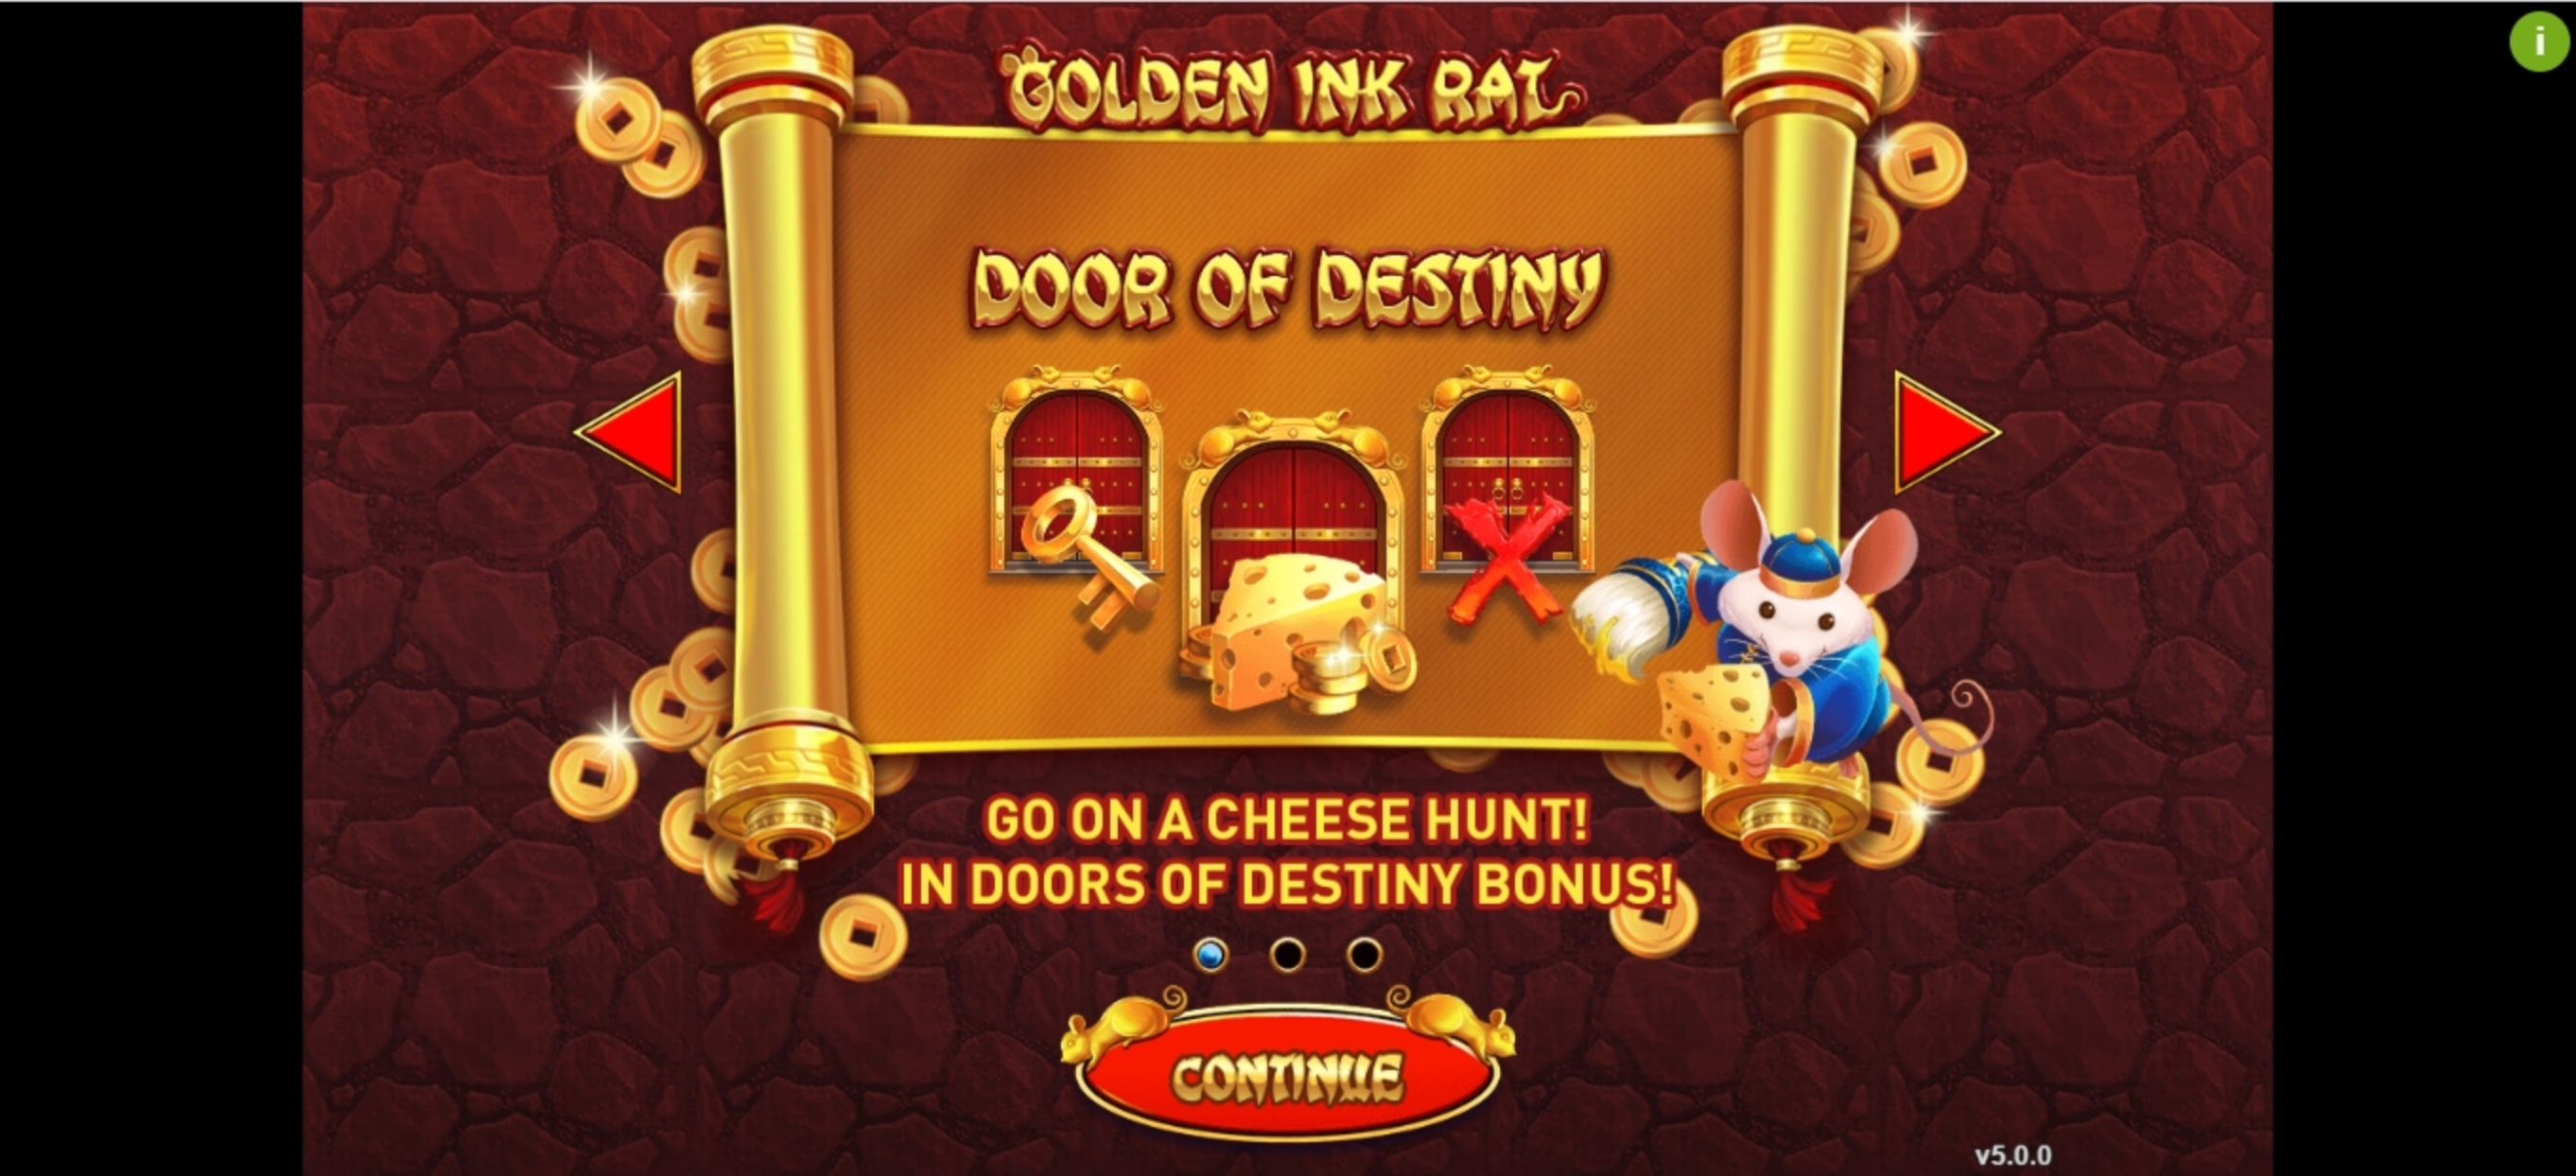 Play Golden Ink Rat Free Casino Slot Game by GamePlay